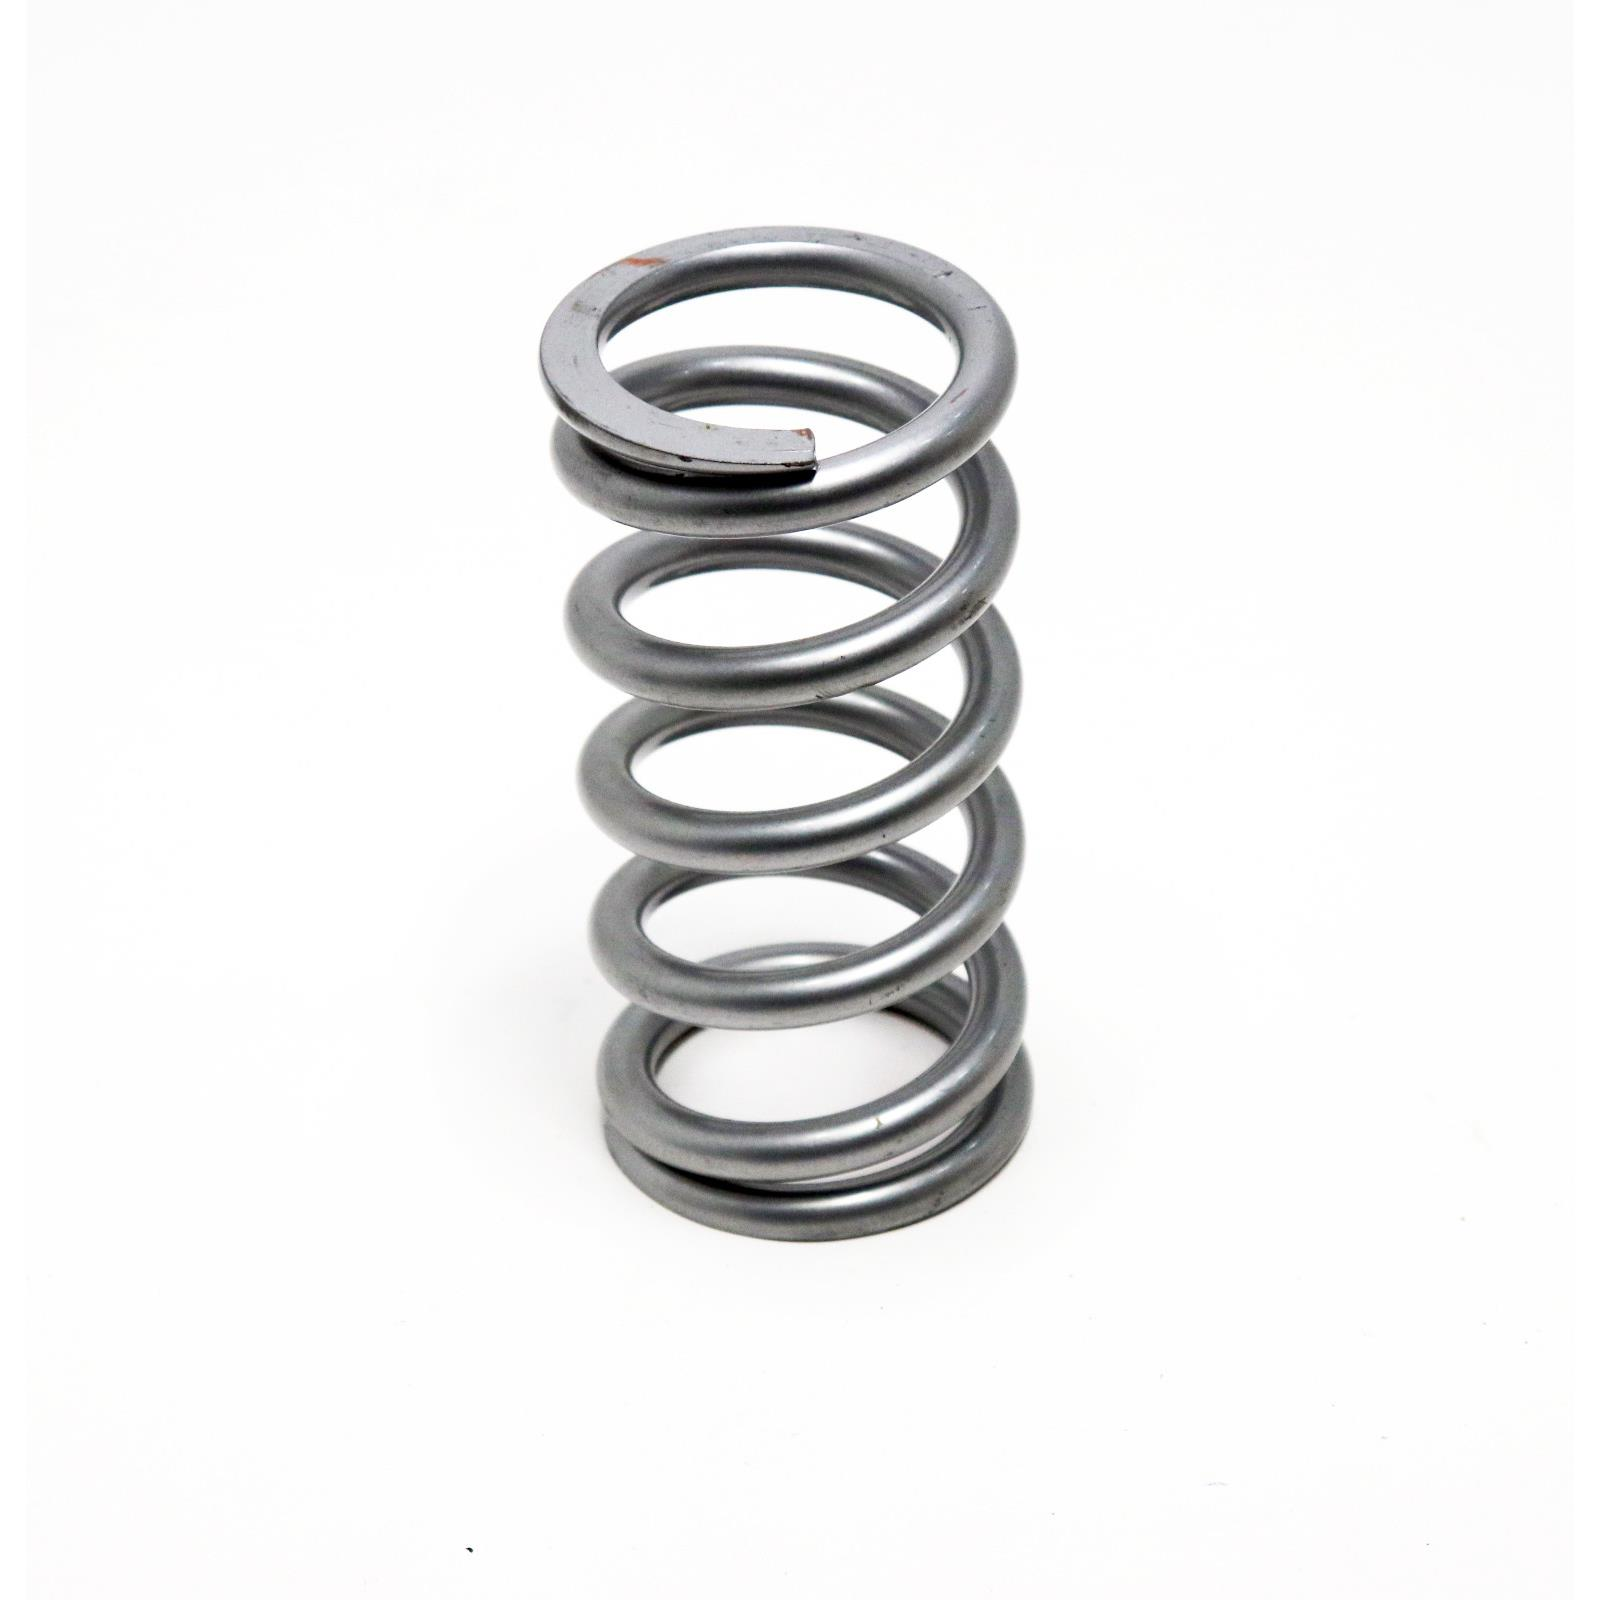 650lb Rate QA1 7HT650 High Travel Coil-Over Spring 7 Inch